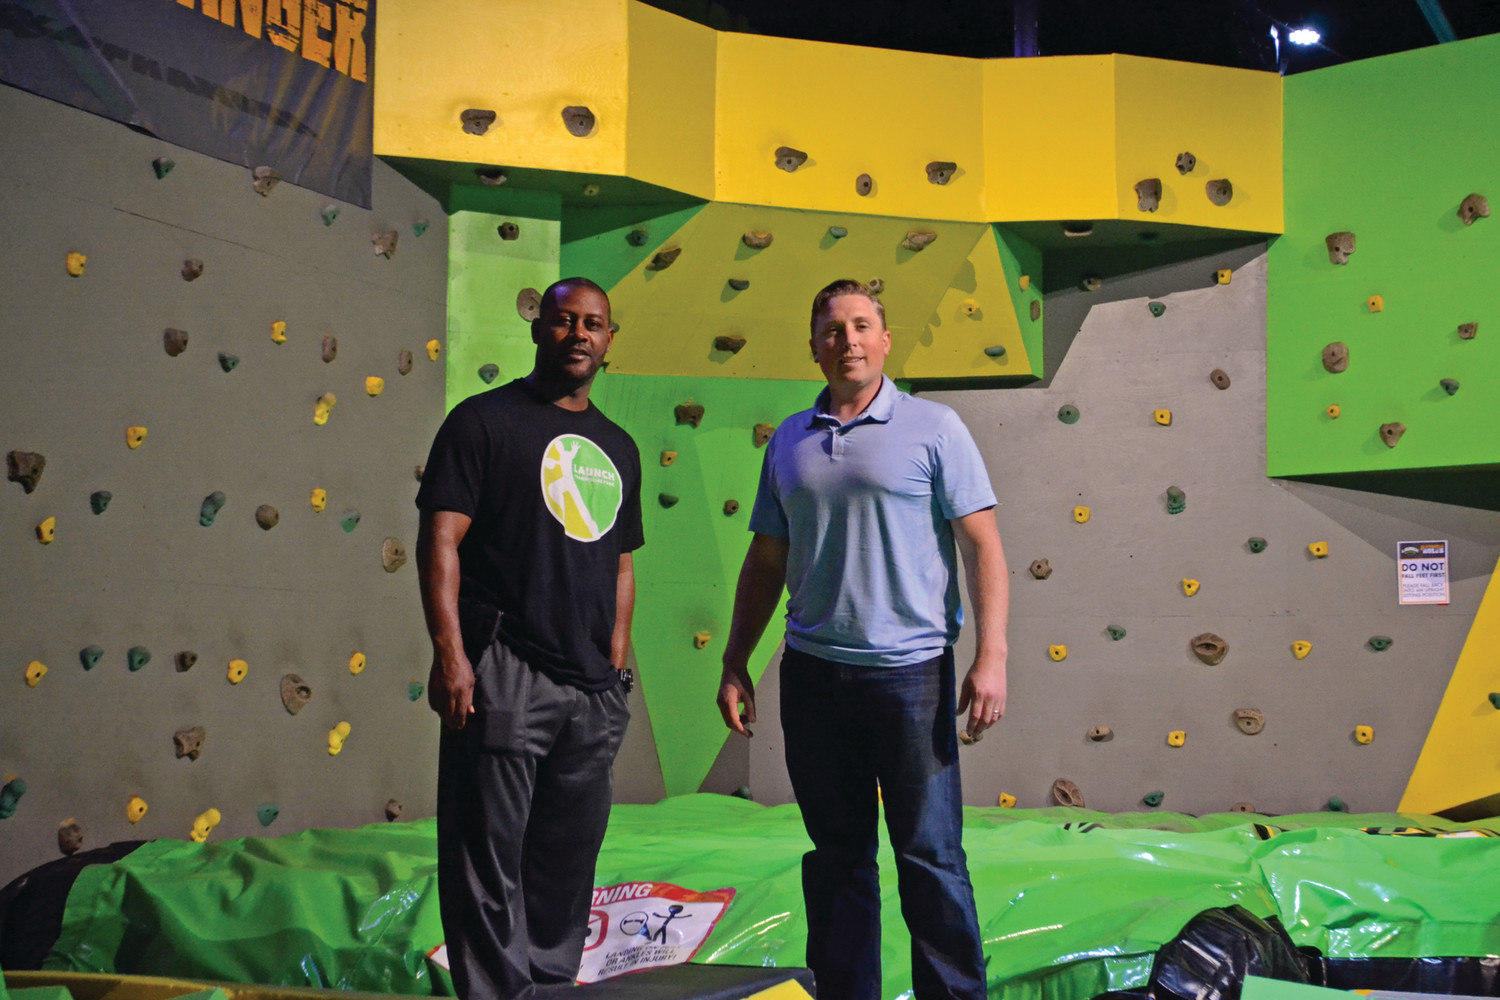 TY'S NEW TEAM: Former New England Patriot and three-time Super Bowl champion Ty Law (left) with business partner and North Kingstown native Rob Arnold at Launch Trampoline Park in Warwick.